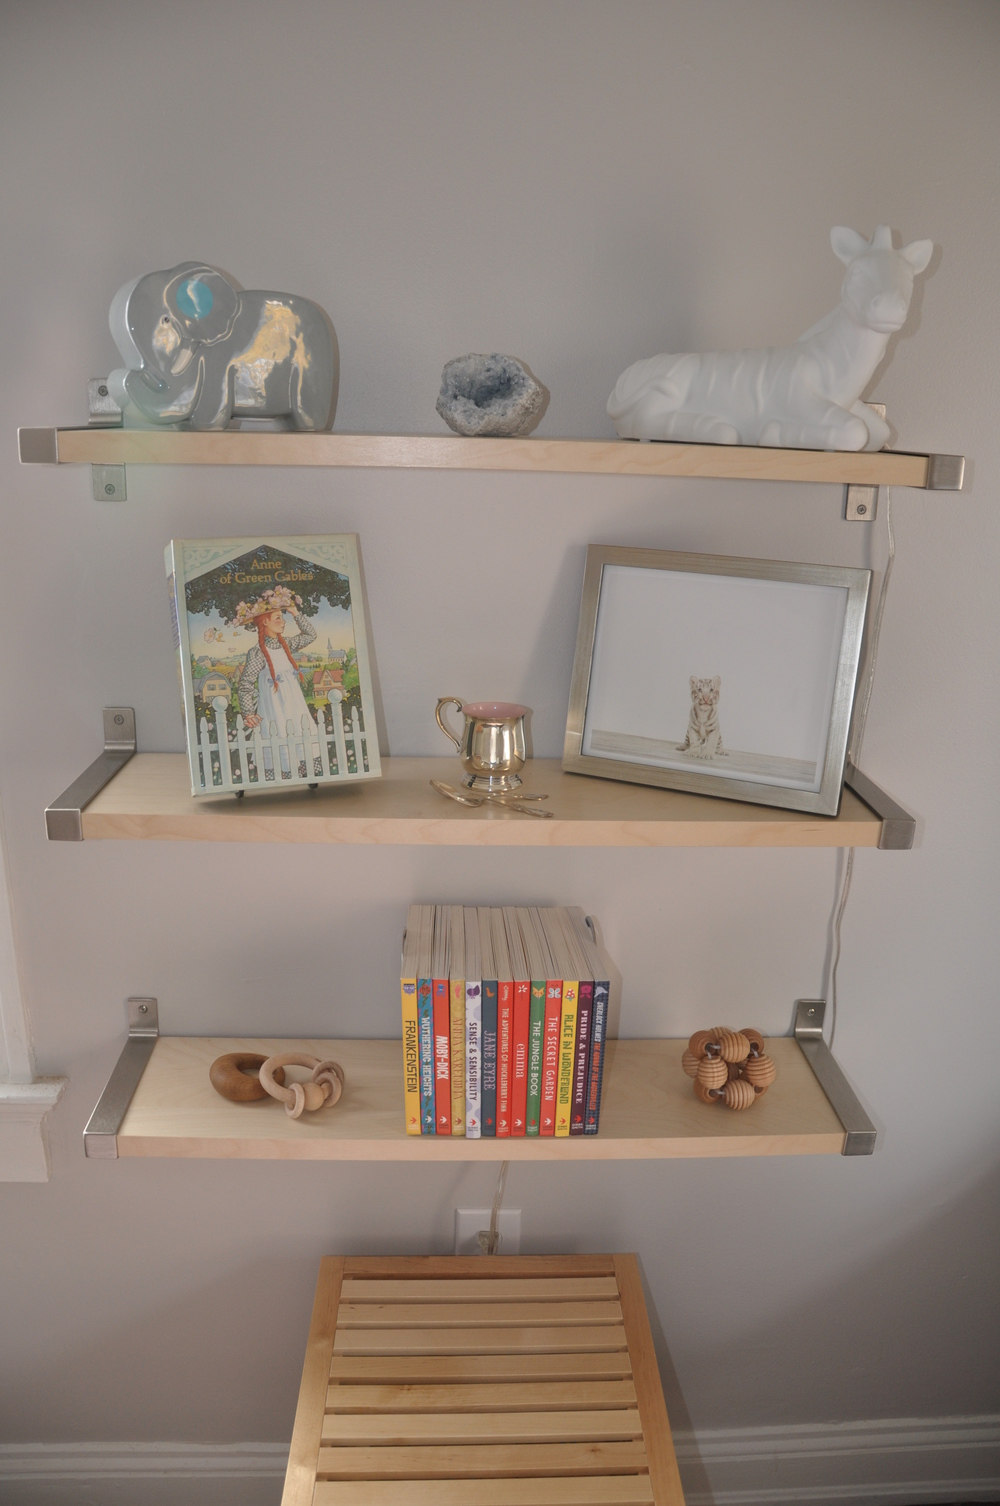 Top shelf: a blue celestine is good for sleep and connection to angelic realms. Middle shelf: my old copy of Anne of Green Gables. Bottom shelf: my friends know my preference & love of all wooden toys, and gifted accordingly.